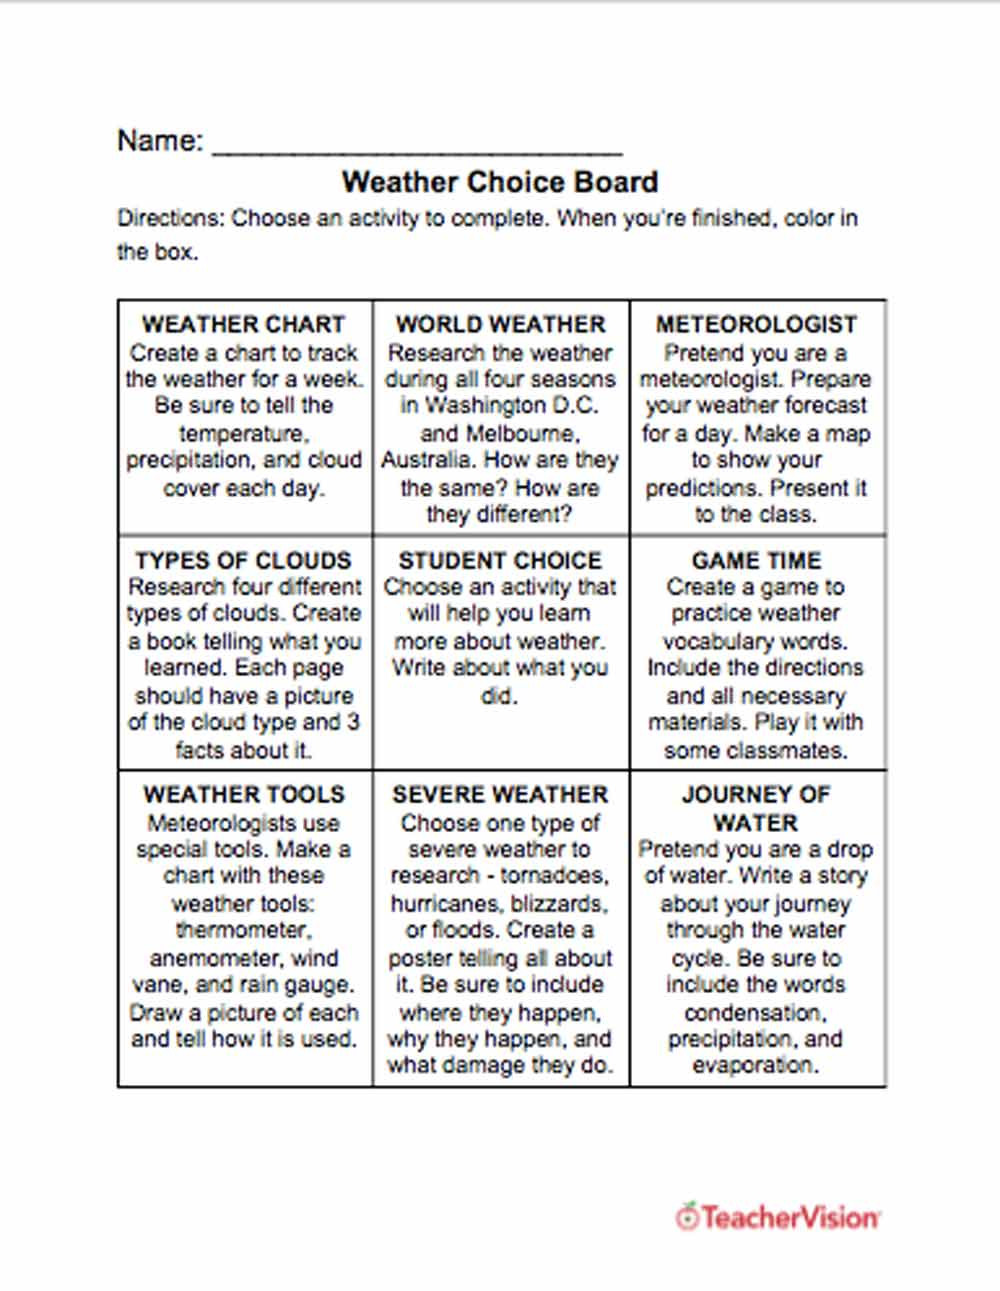 Water Cycle Worksheet 5th Grade Weather Choice Board Teachervision